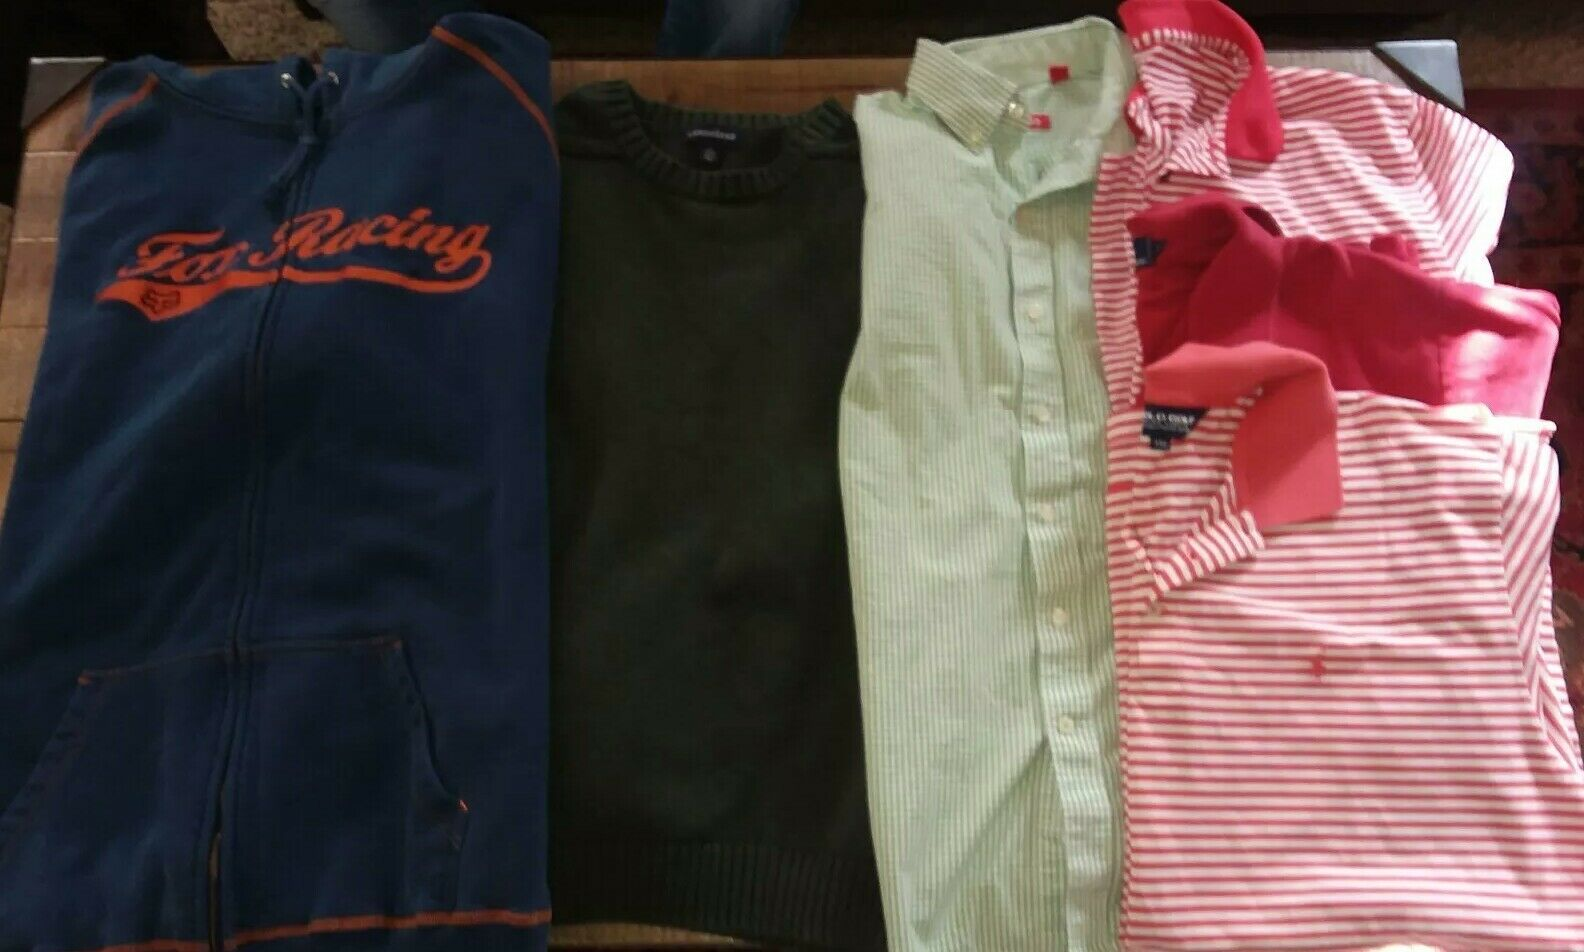 Lof Of Mens XL 2XL pre-owned name Brand Clothing. Polo, Izod, Fox Racing & More